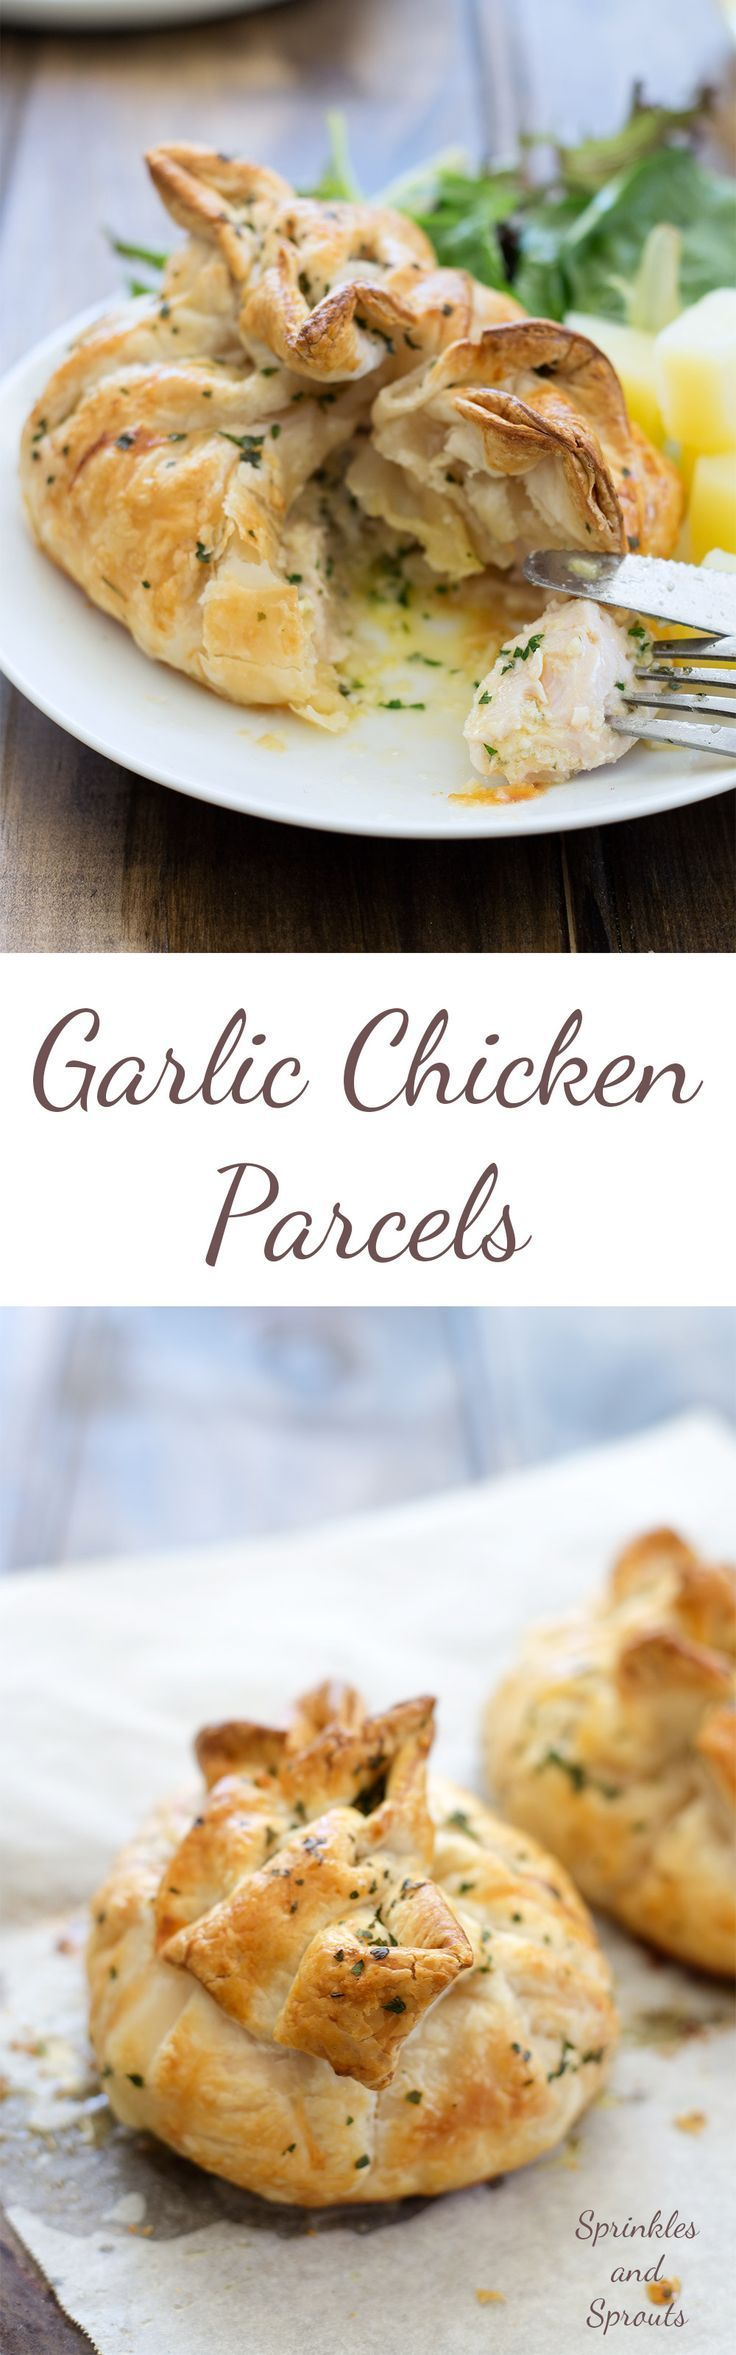 These Garlic Chicken Parcels are super easy and super impressive. Individual parcels, filled with juicy chicken and oozing with garlic butter. They are perfect for entertaining as they can be prepared ahead of time and then just popped in the oven to cook